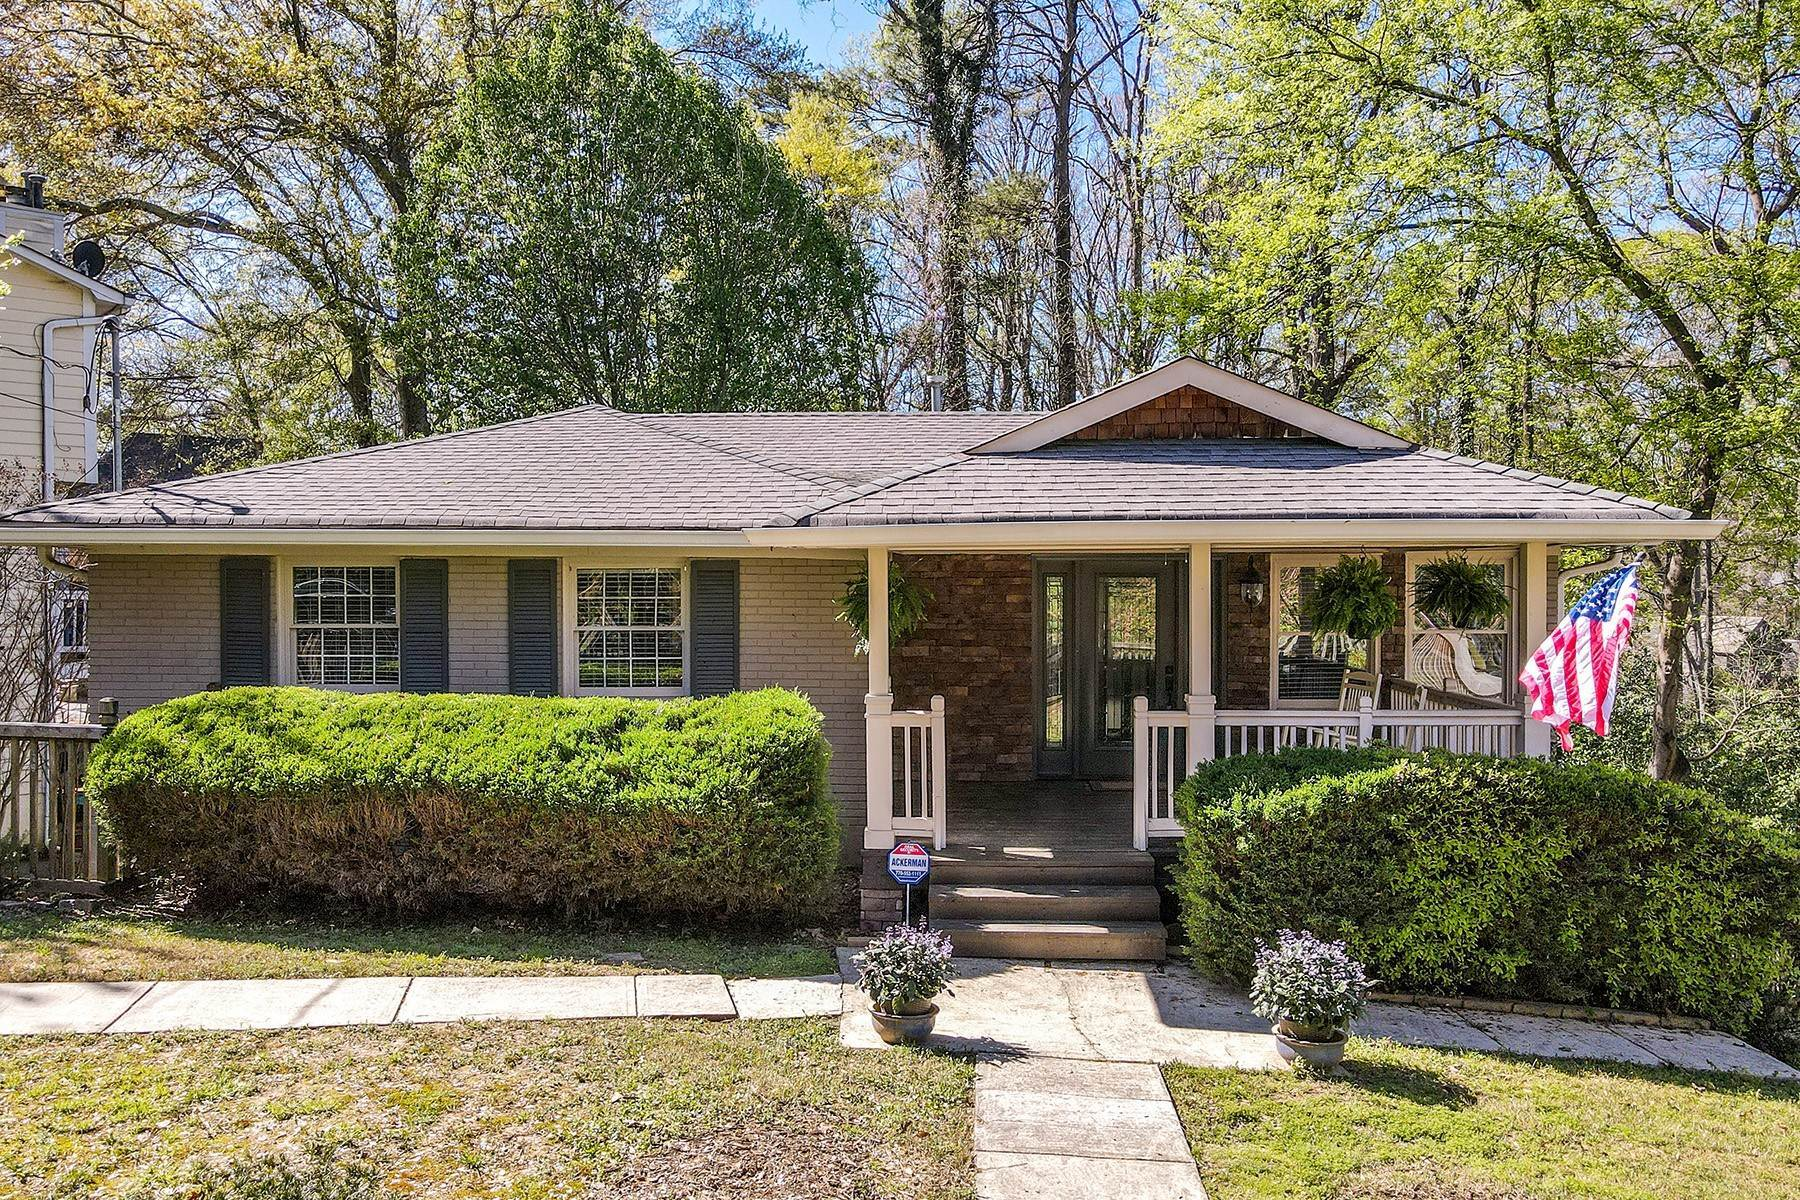 Single Family Homes for Sale at Charming Mid-Century Bungalow In Sought After Piedmont Heights 590 Montgomery Ferry Road NE Atlanta, Georgia 30324 United States